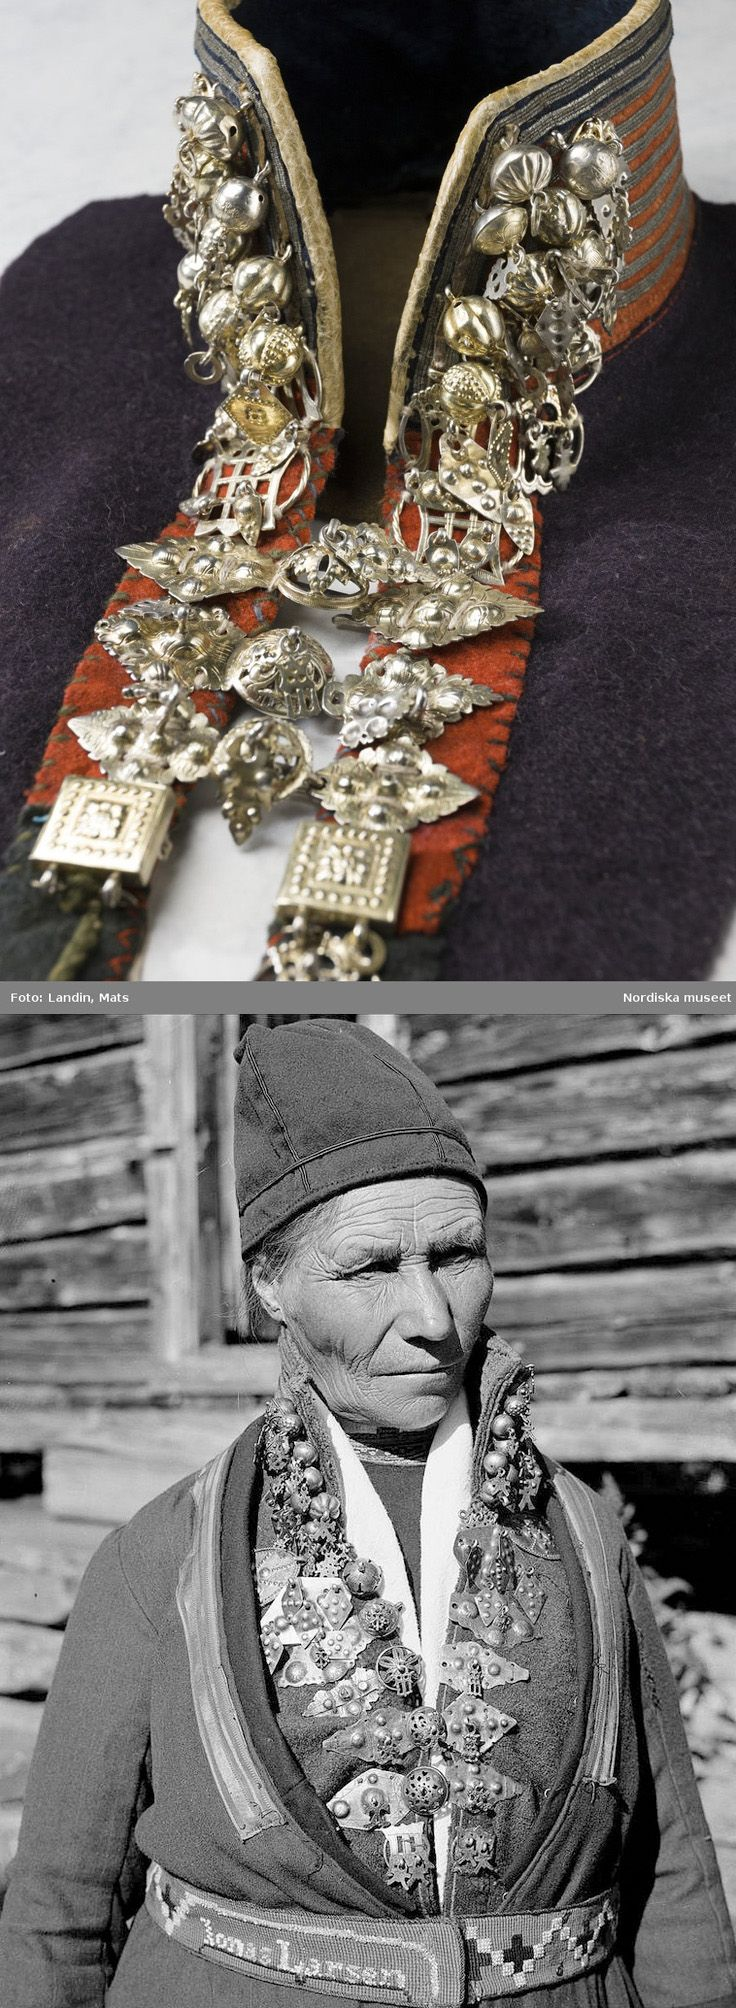 Above: Jewelry, Sami silver collar (Silverkrage). Part of traditional clothing with silver and metal goldwork (embroidery) on the collar. Used of Senjen, Tromso, Norway, in the early 1800s. http://www.flickriver.com/photos/28772513@N07/3567228873/ Below: Sami woman from Sweden with a silver collar. 1935. https://www.flickr.com/photos/28772513@N07/14832789461/